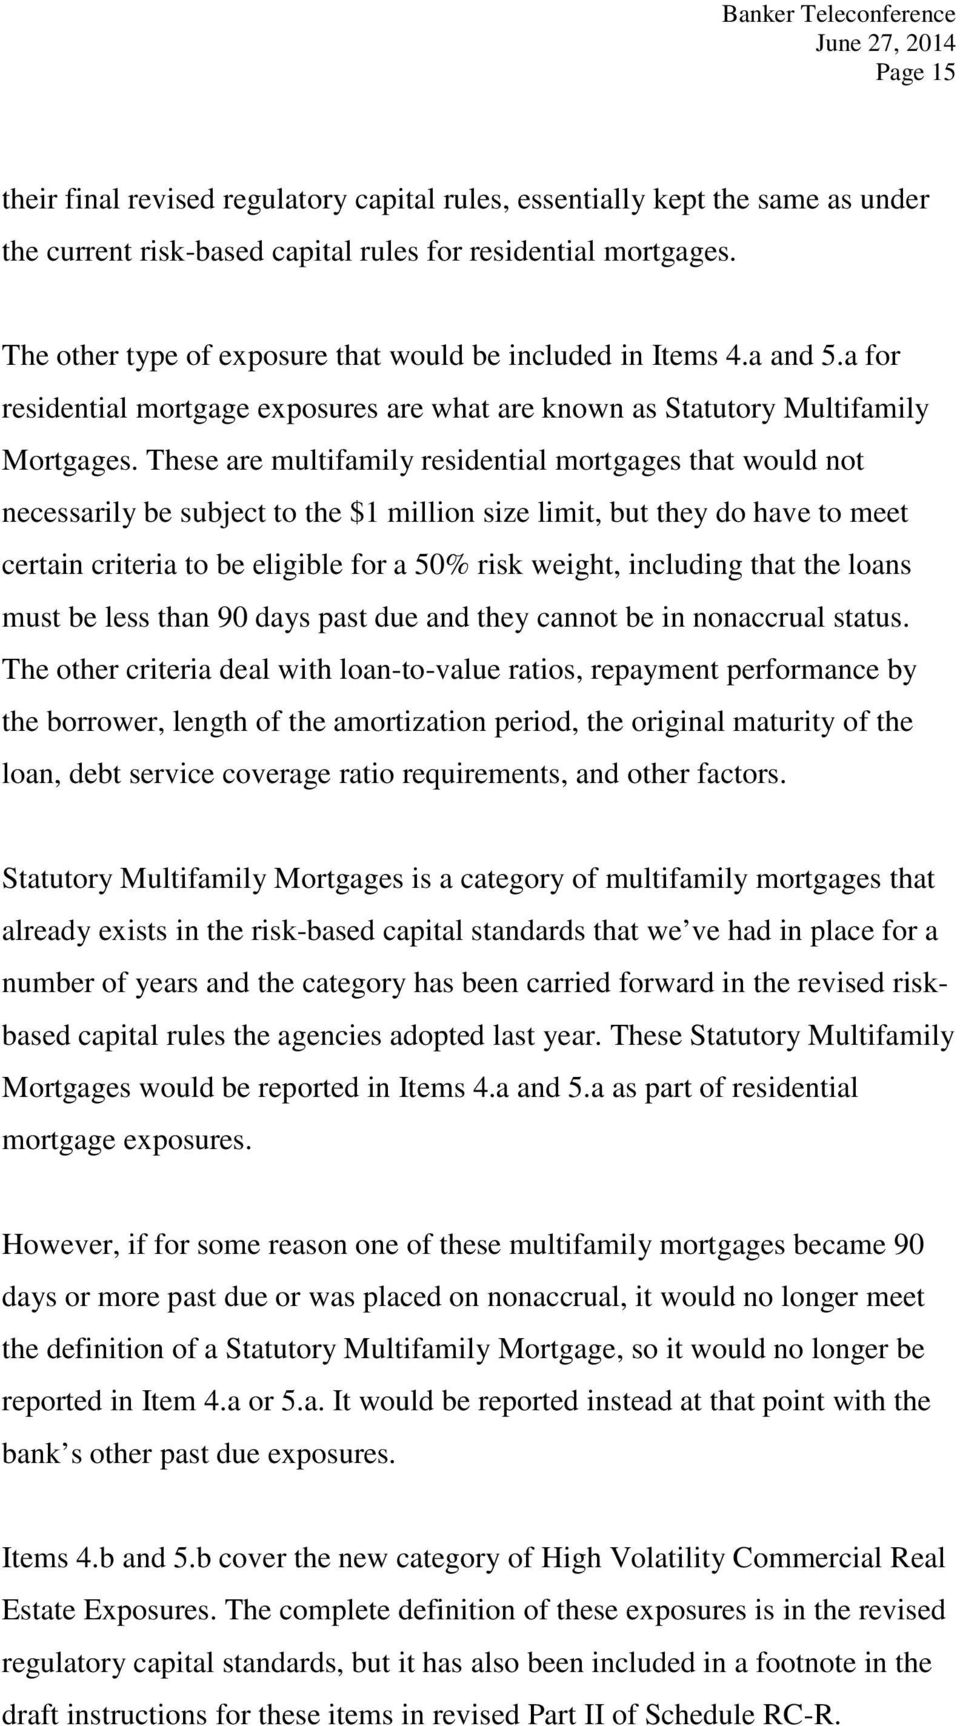 These are multifamily residential mortgages that would not necessarily be subject to the $1 million size limit, but they do have to meet certain criteria to be eligible for a 50% risk weight,